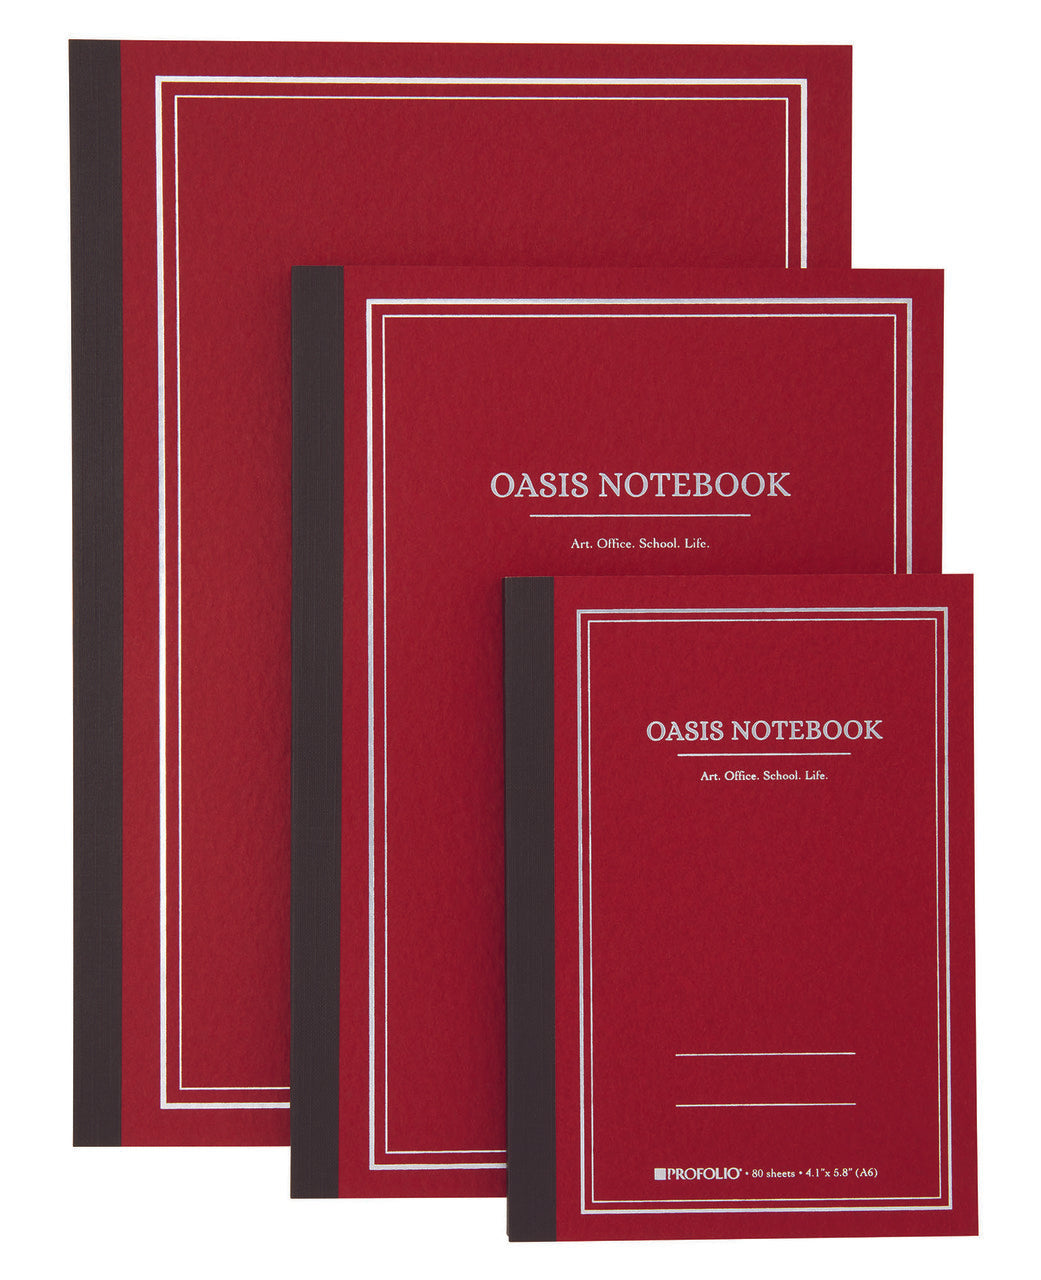 ProFolio Oasis Notebooks are high quality, fountain pen friendly Japanese notebooks.